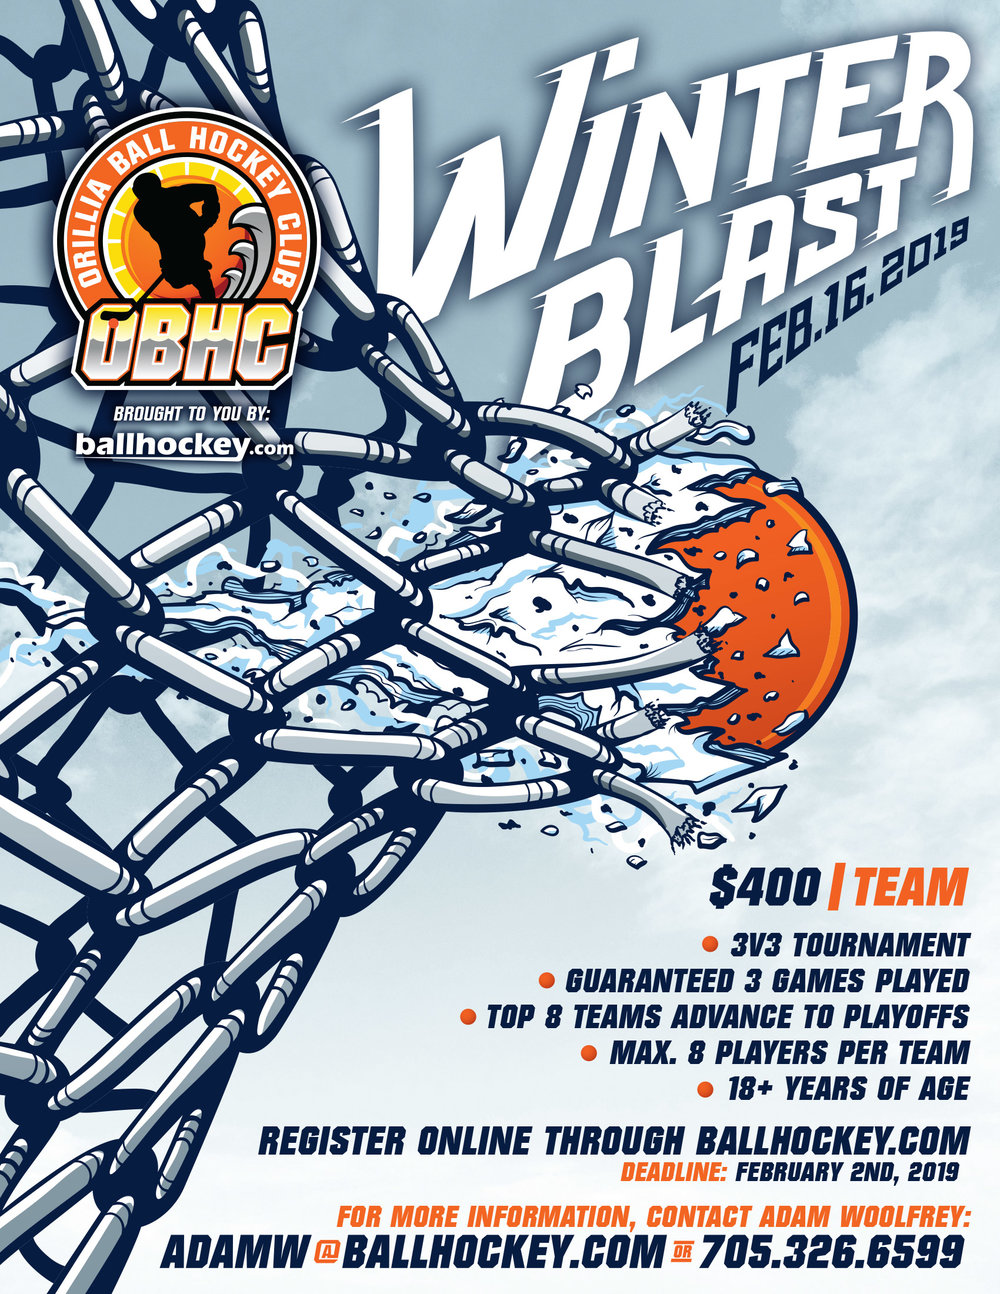 OBHC_Winter_Blast_Flyer_2019_01_08_WEB.jpg